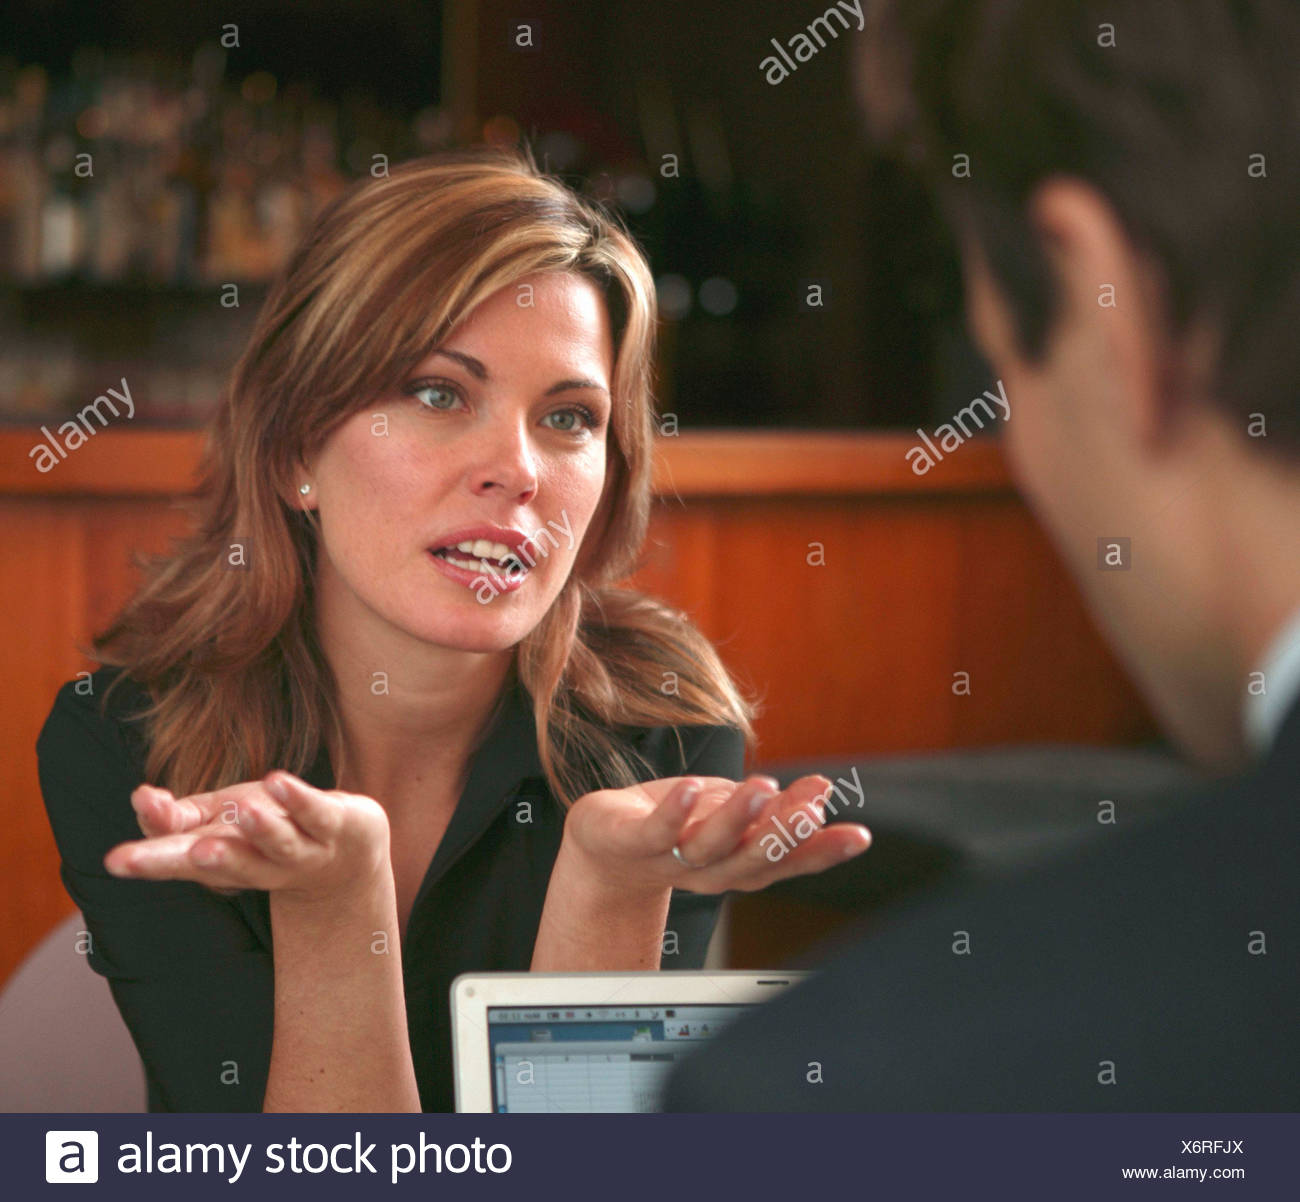 A businesswoman and man having a meeting in a hotel bar - Stock Image